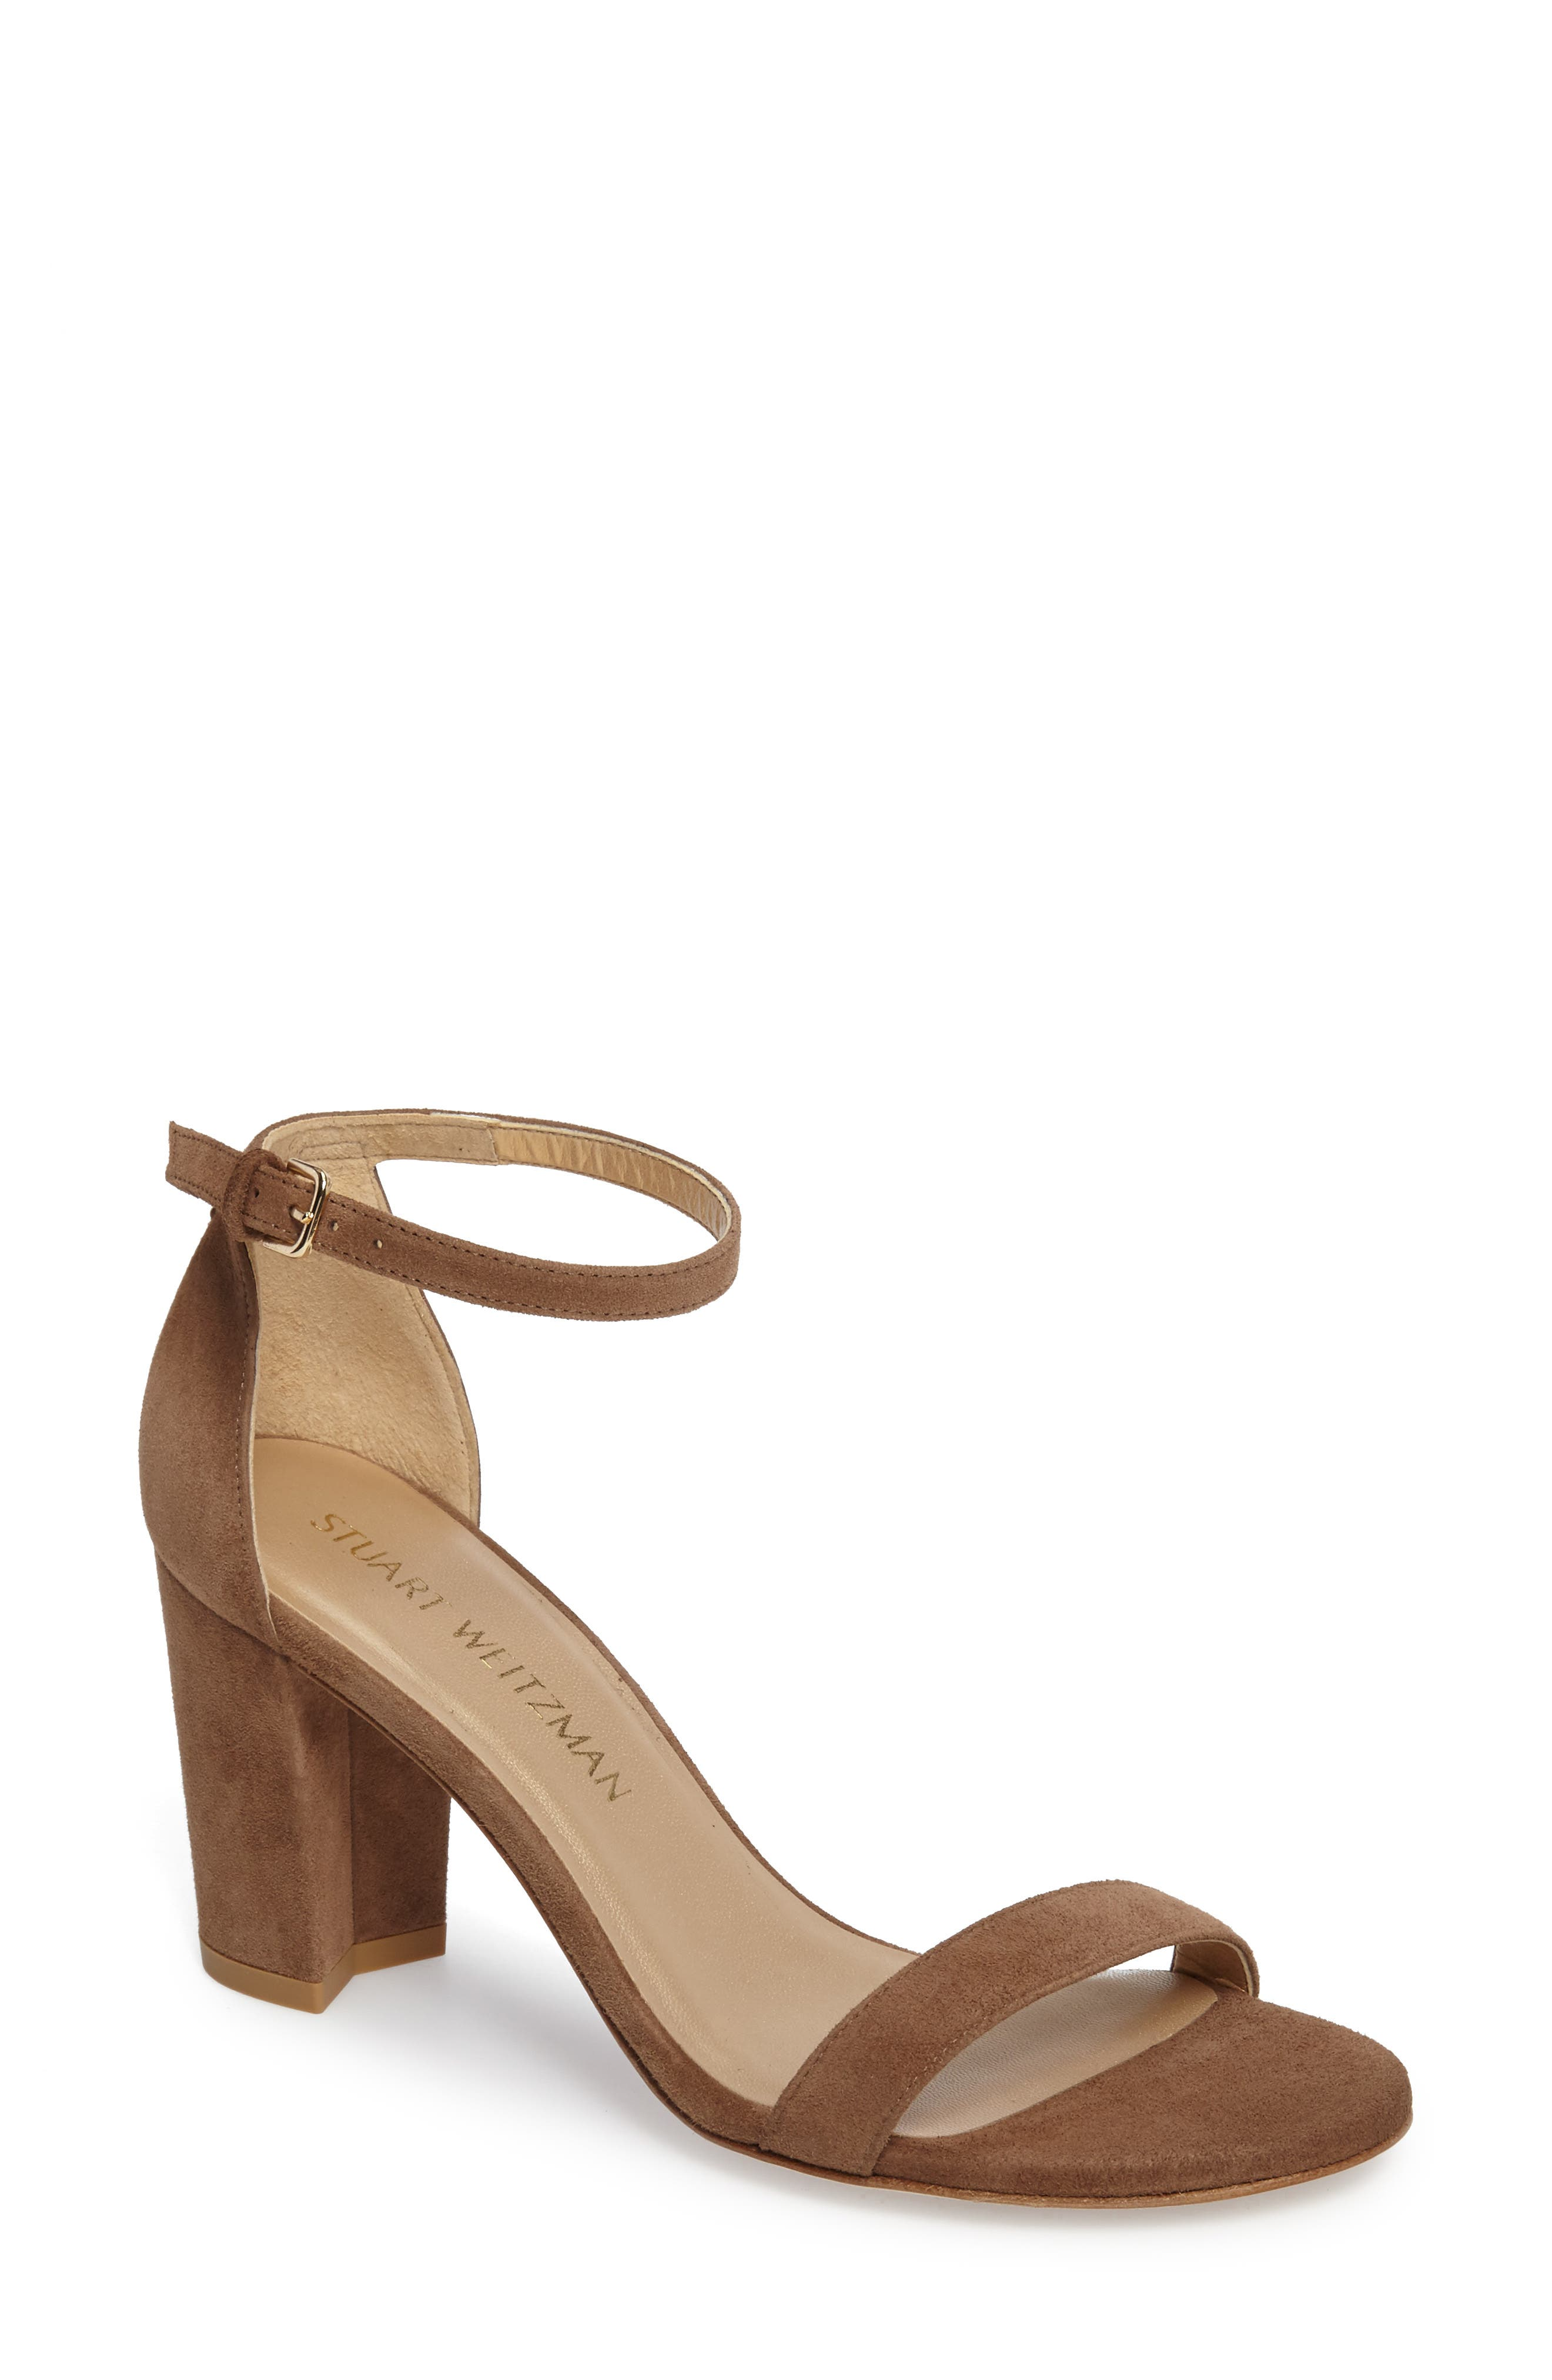 NearlyNude Ankle Strap Sandal,                             Main thumbnail 16, color,